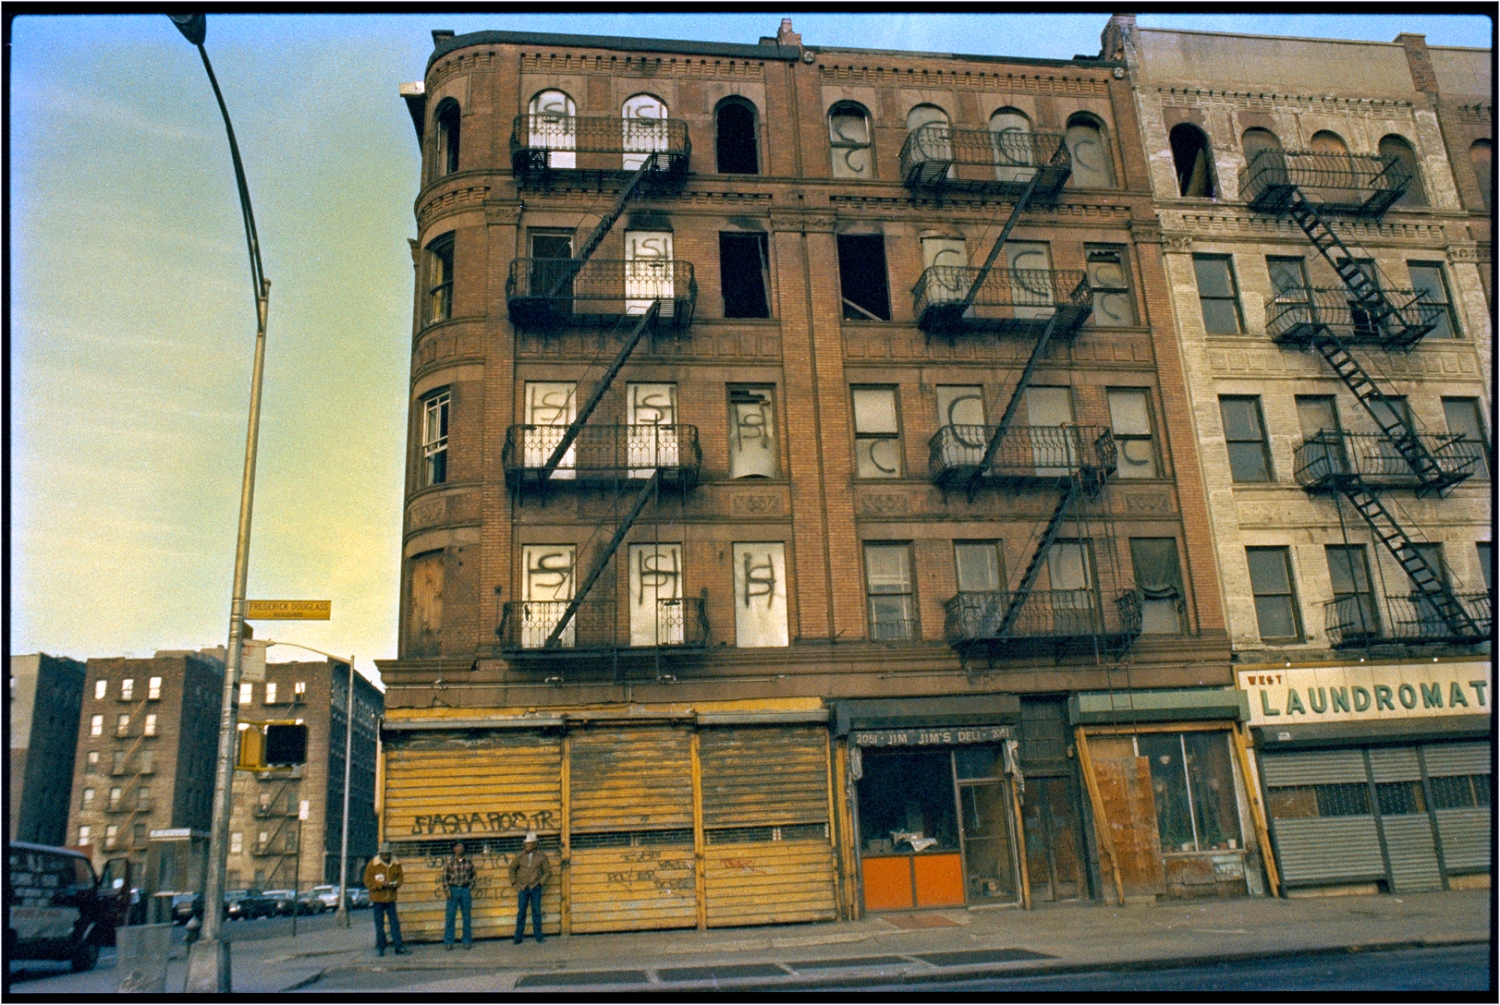 Harlem-Tenements-Laundromat-1985 copy